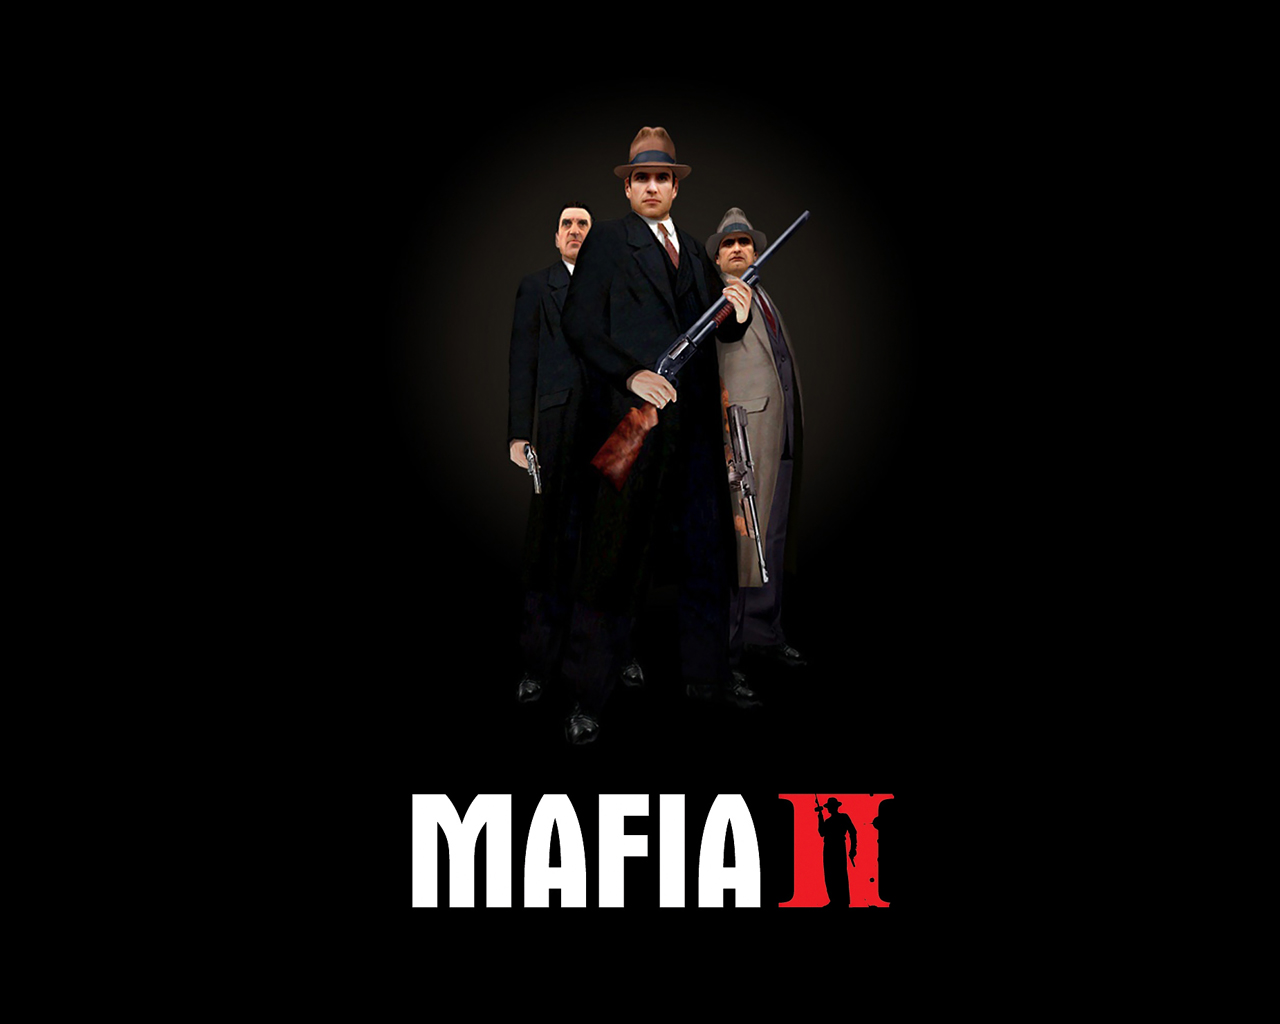 Mafia_II_(Mafia_2)_by_2K_Games